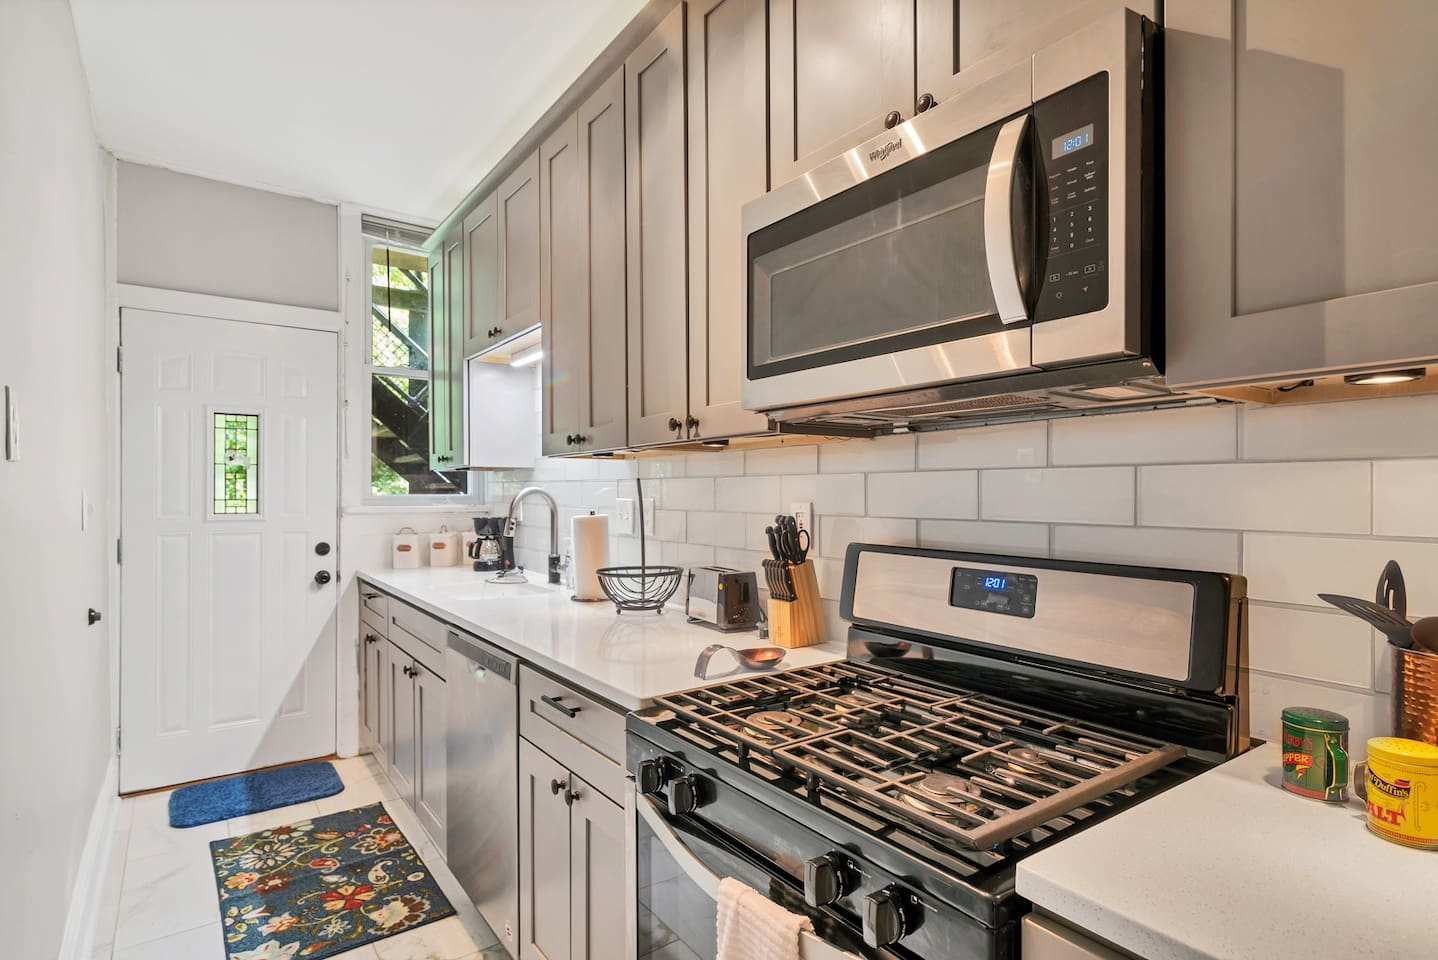 Beautiful kitchen with new stainless steel appliances, quartz countertop, full size refrigerator, dishwasher and all the kitchen equipment to make meals!